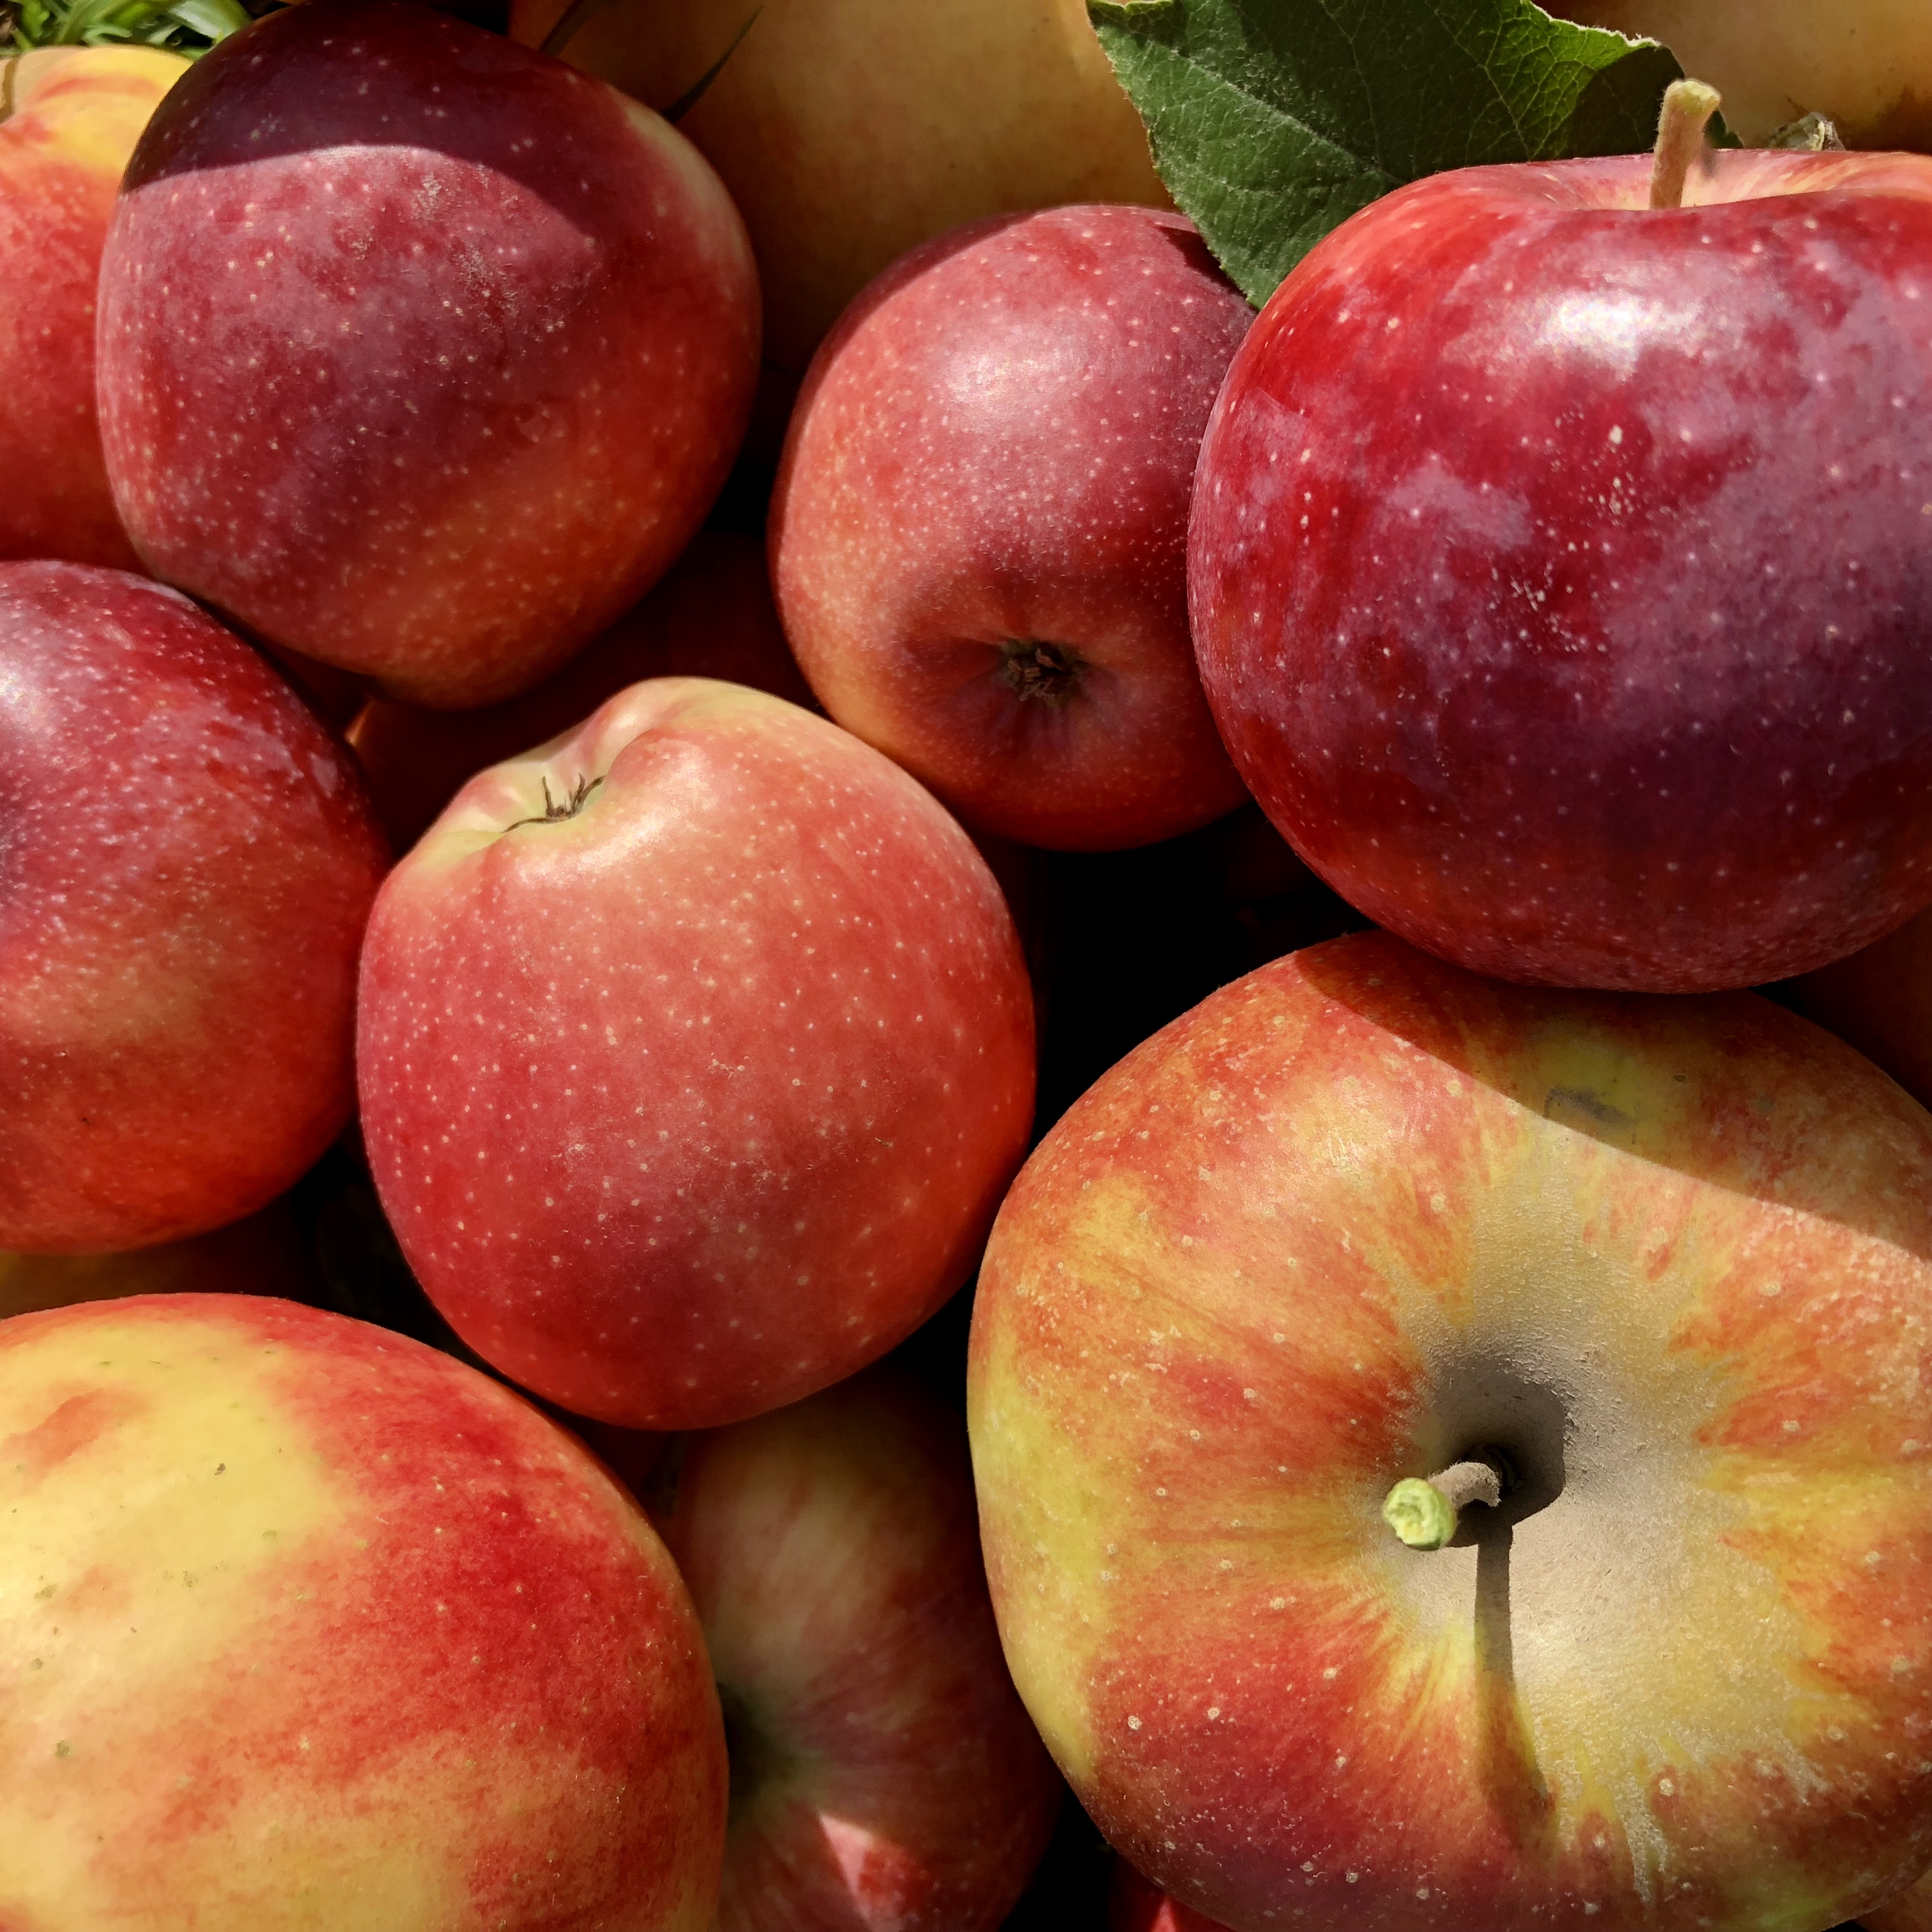 delicious apples, abundance, sun-kissed and juicy apples